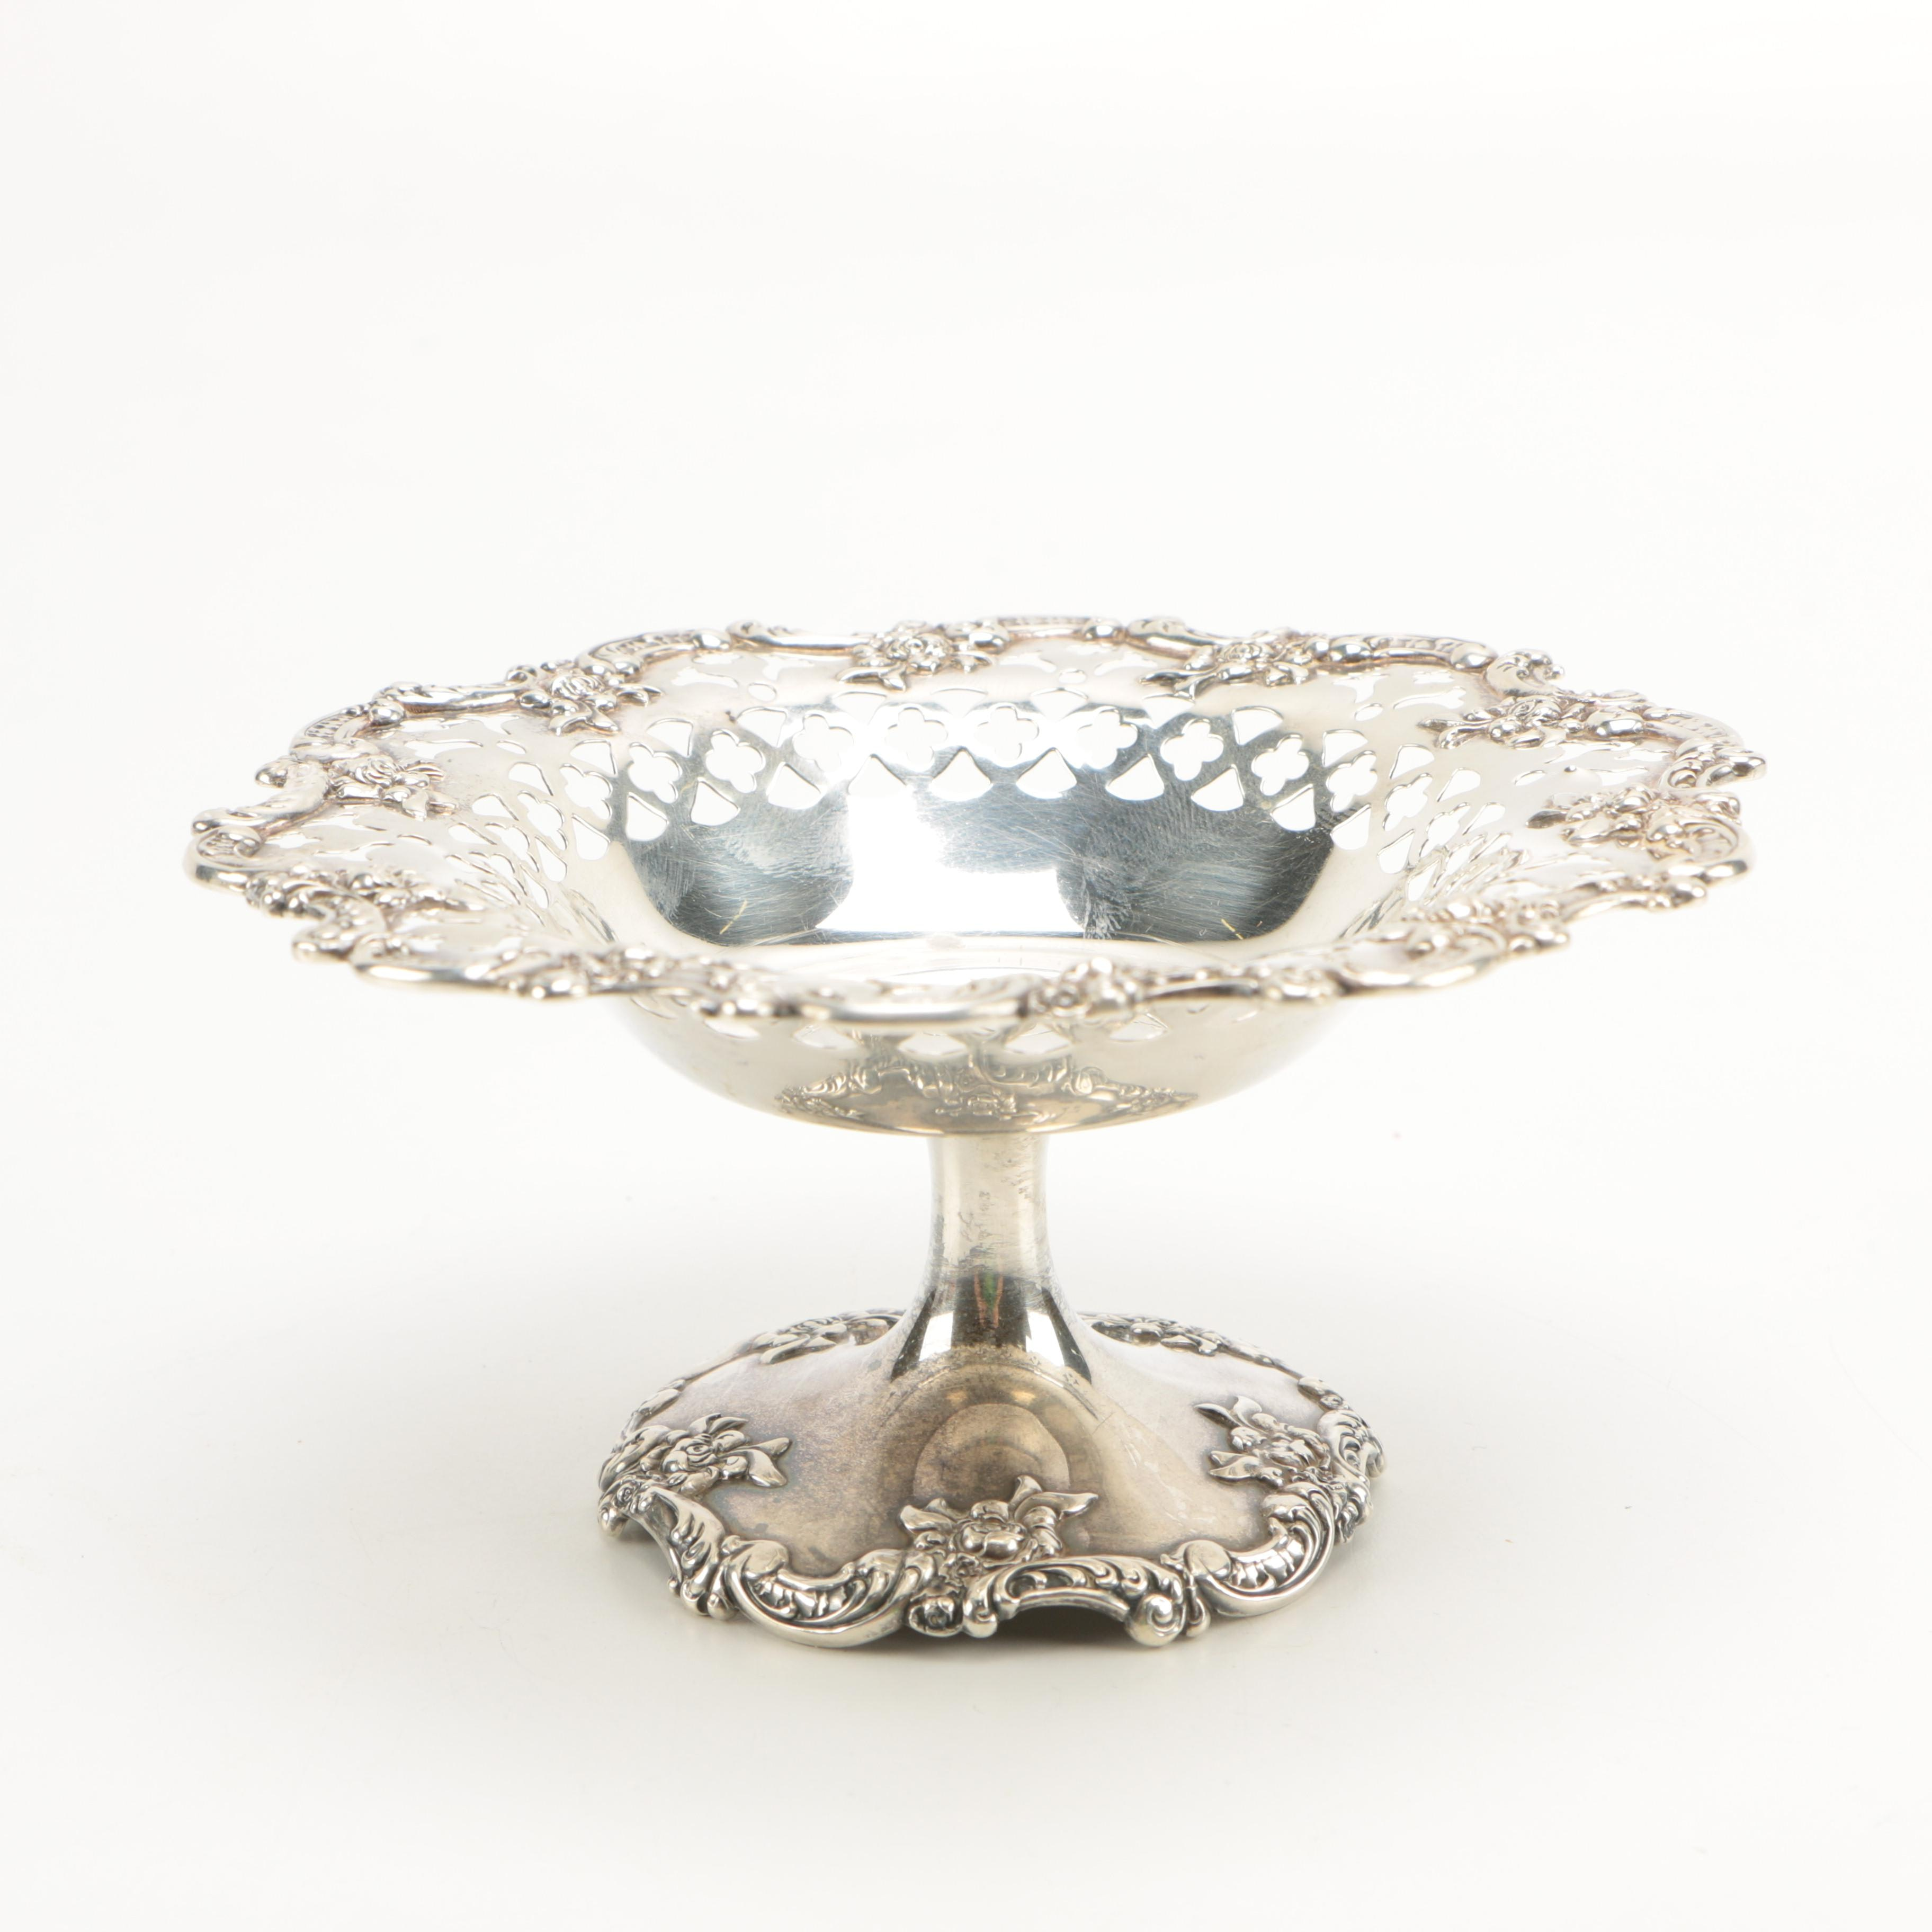 Towle Silversmiths Rococo Style Sterling Silver Pedestal Nut Dish